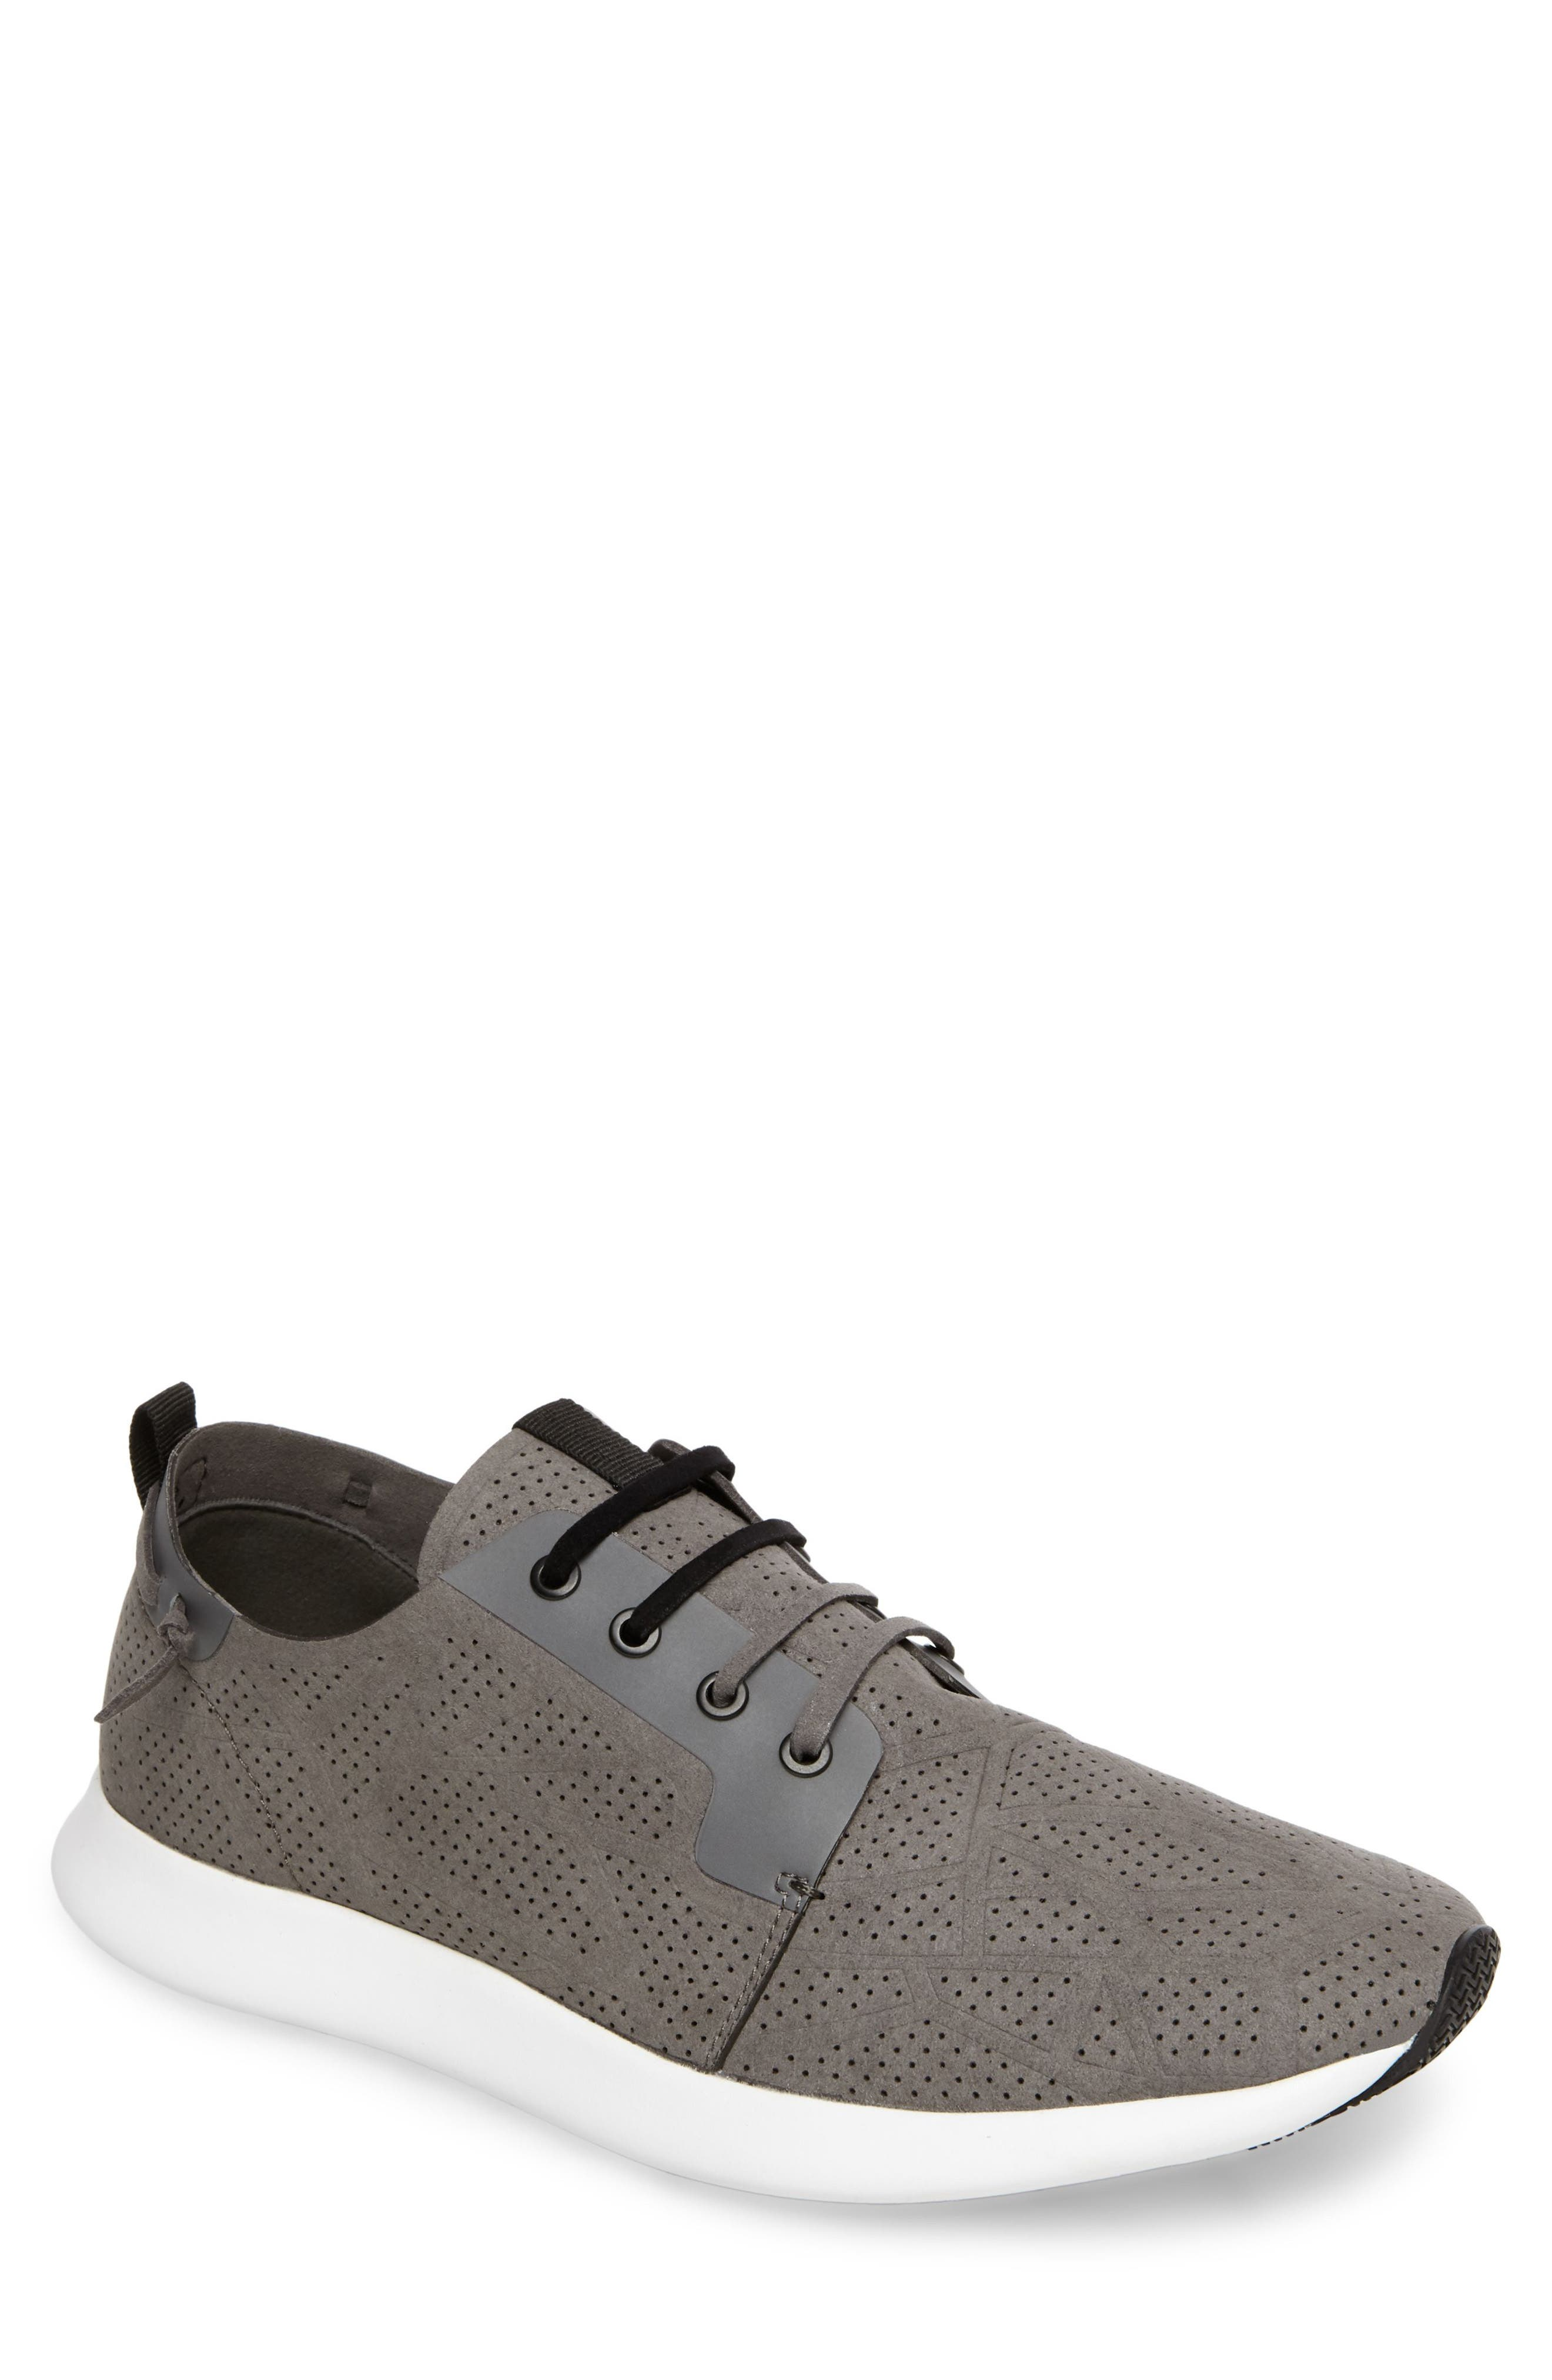 Batali Perforated Sneaker,                             Main thumbnail 1, color,                             Grey